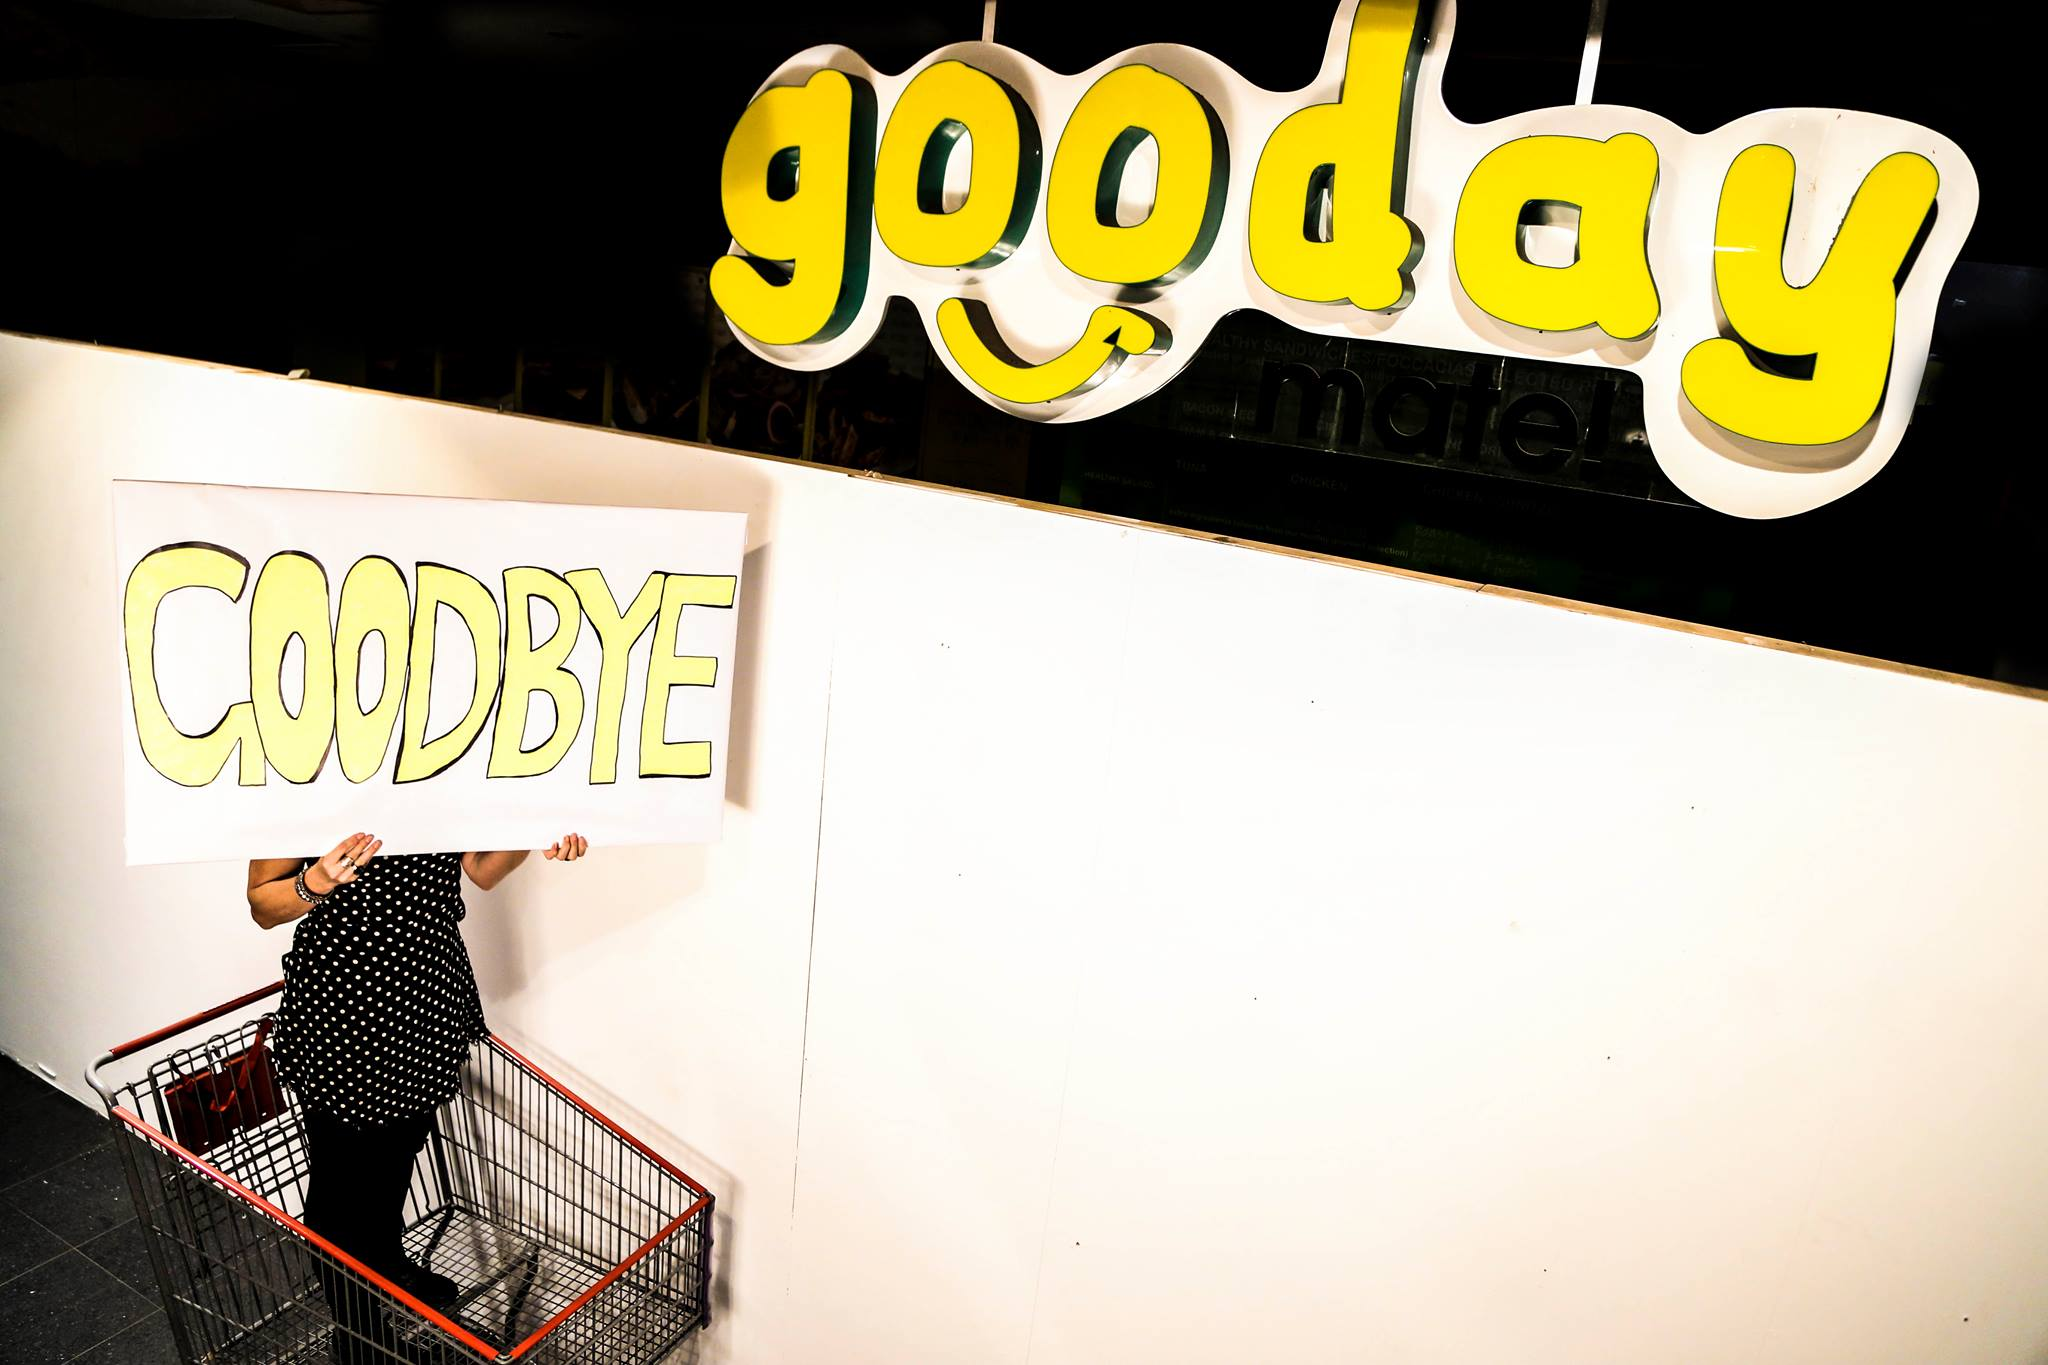 Installation as part of GOOday GOOdbye